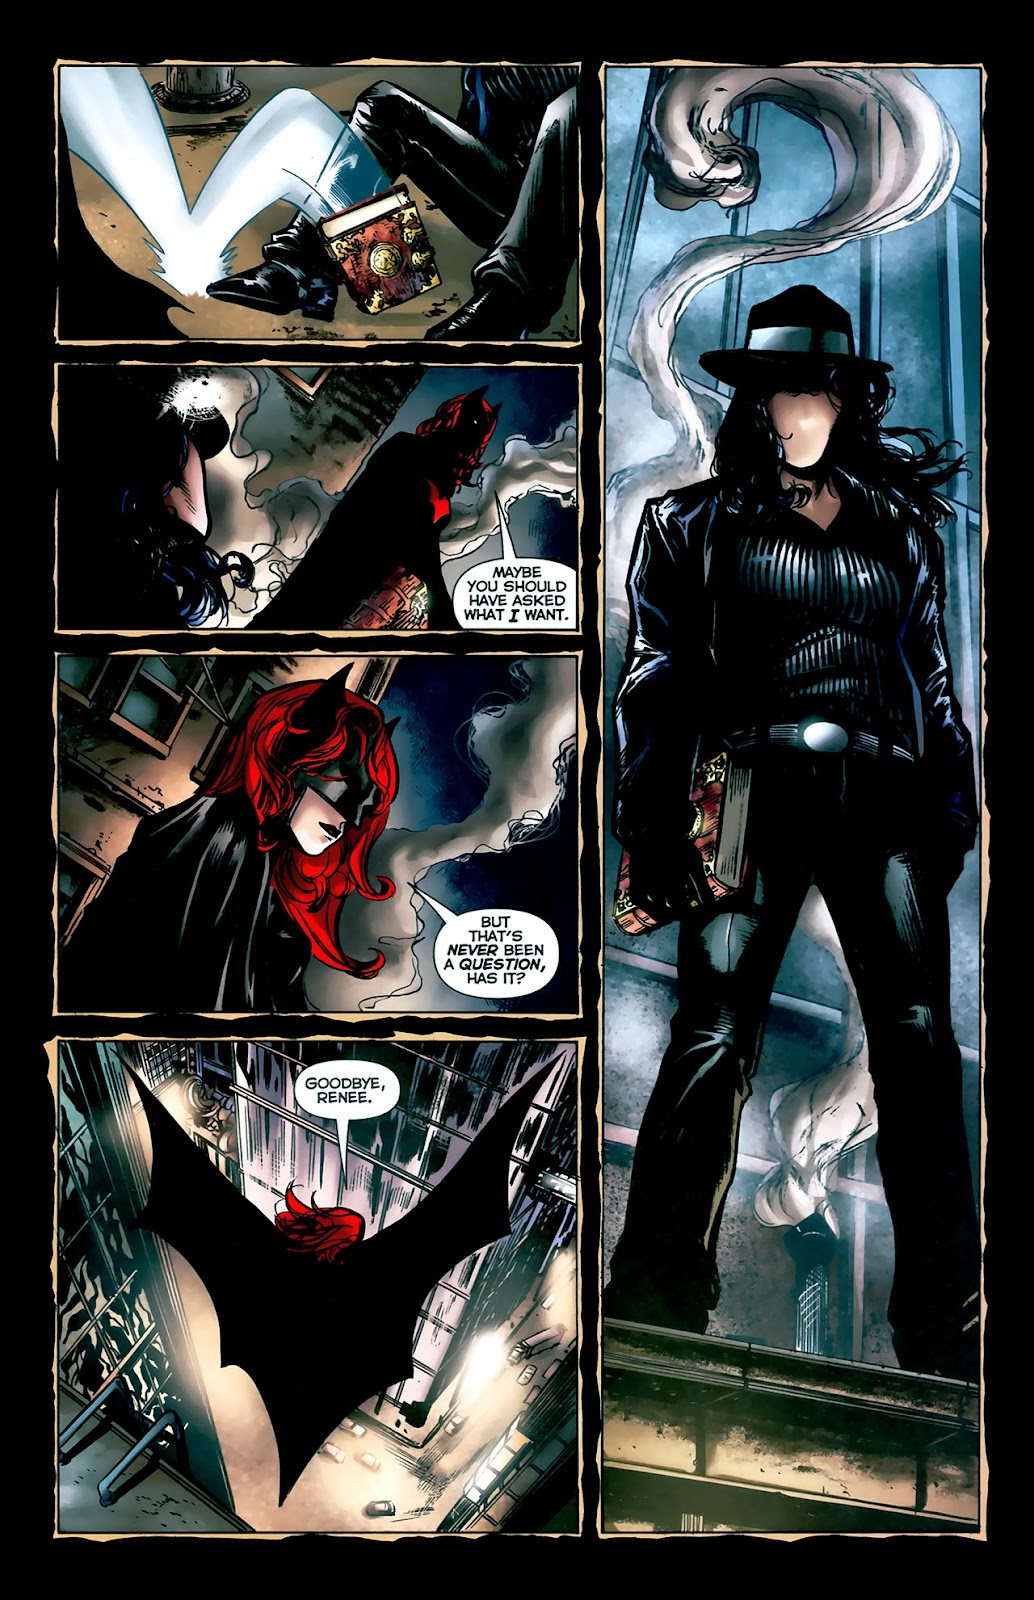 Crime Bible: The Five Lessons of Blood issue 3 - Page 21